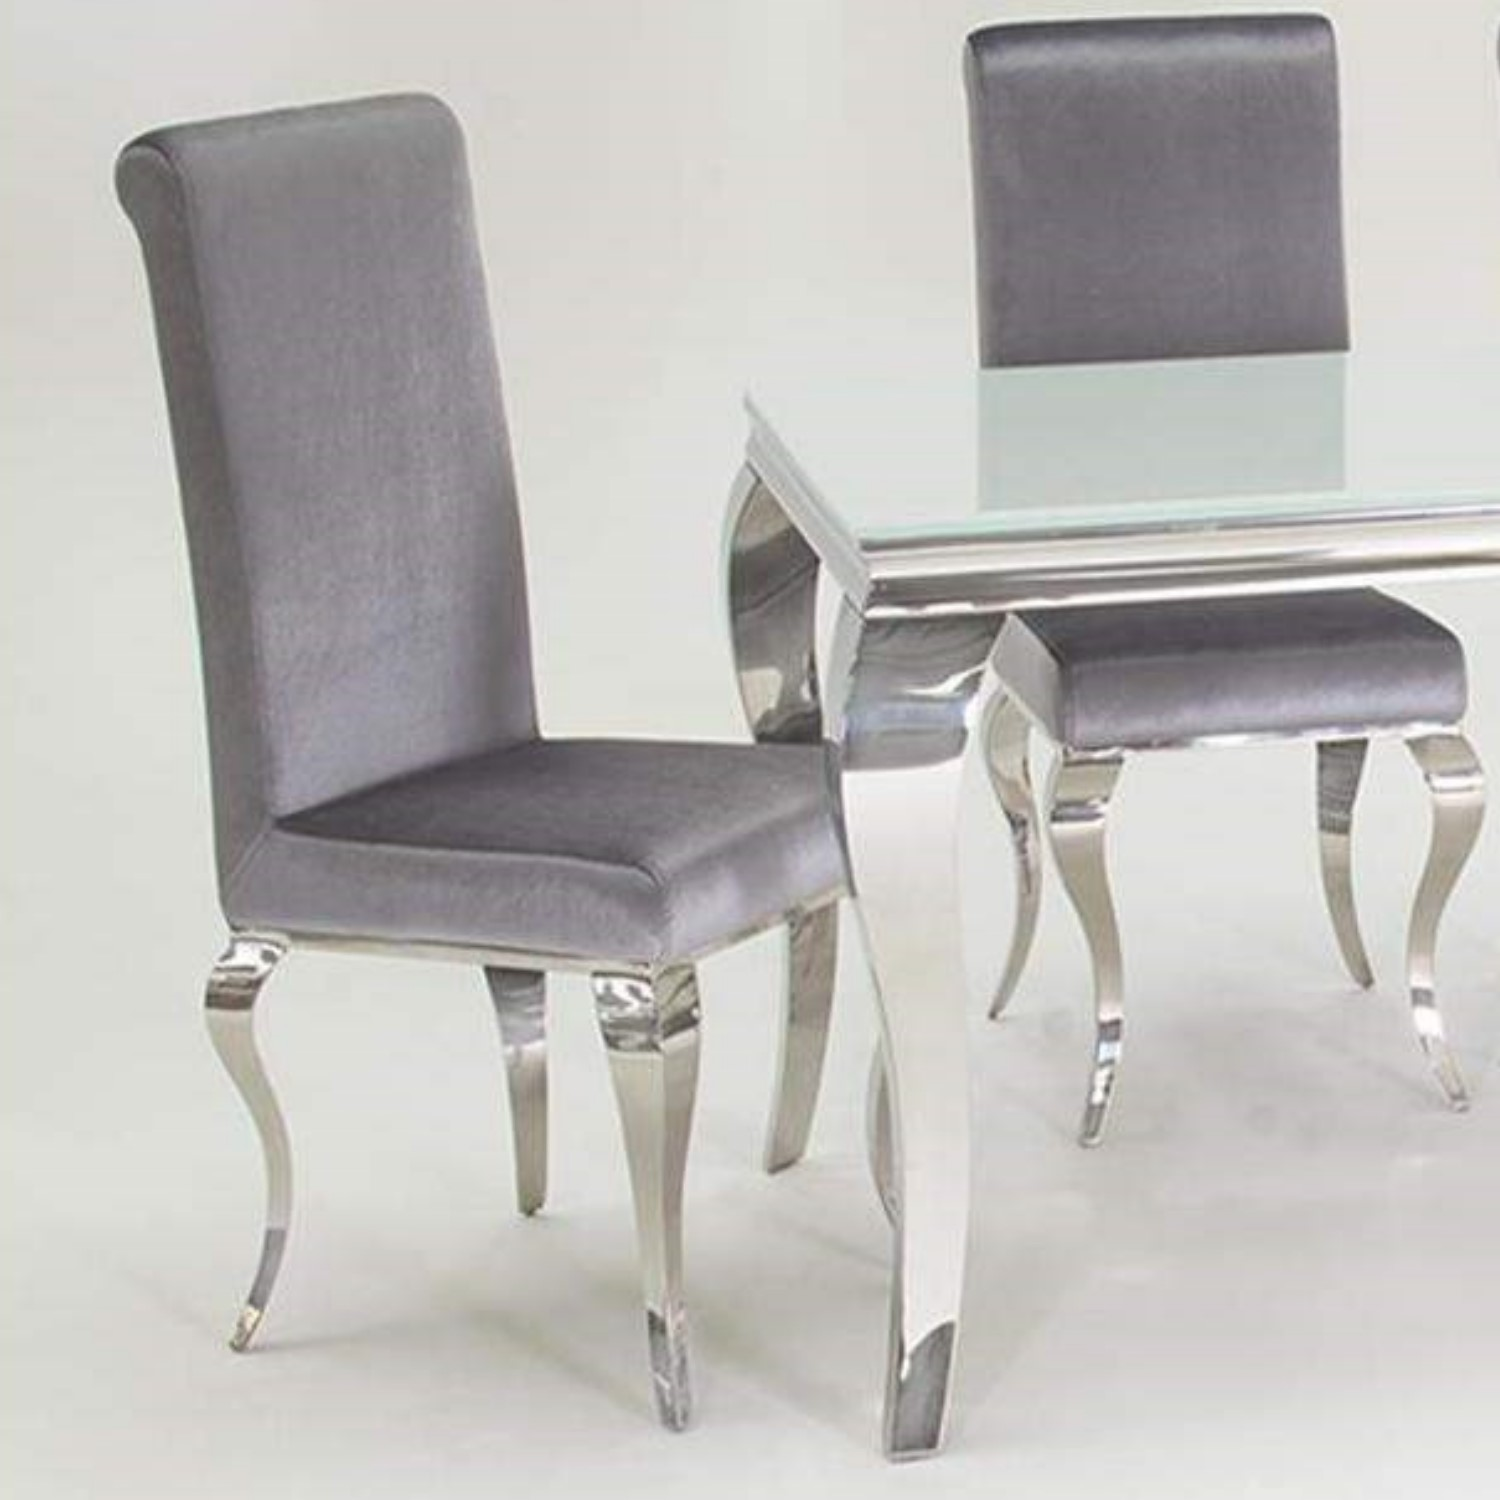 Miraculous Louis Pair Of Silver Velvet Dining Chairs With Mirrored Legs Vida Living Camellatalisay Diy Chair Ideas Camellatalisaycom